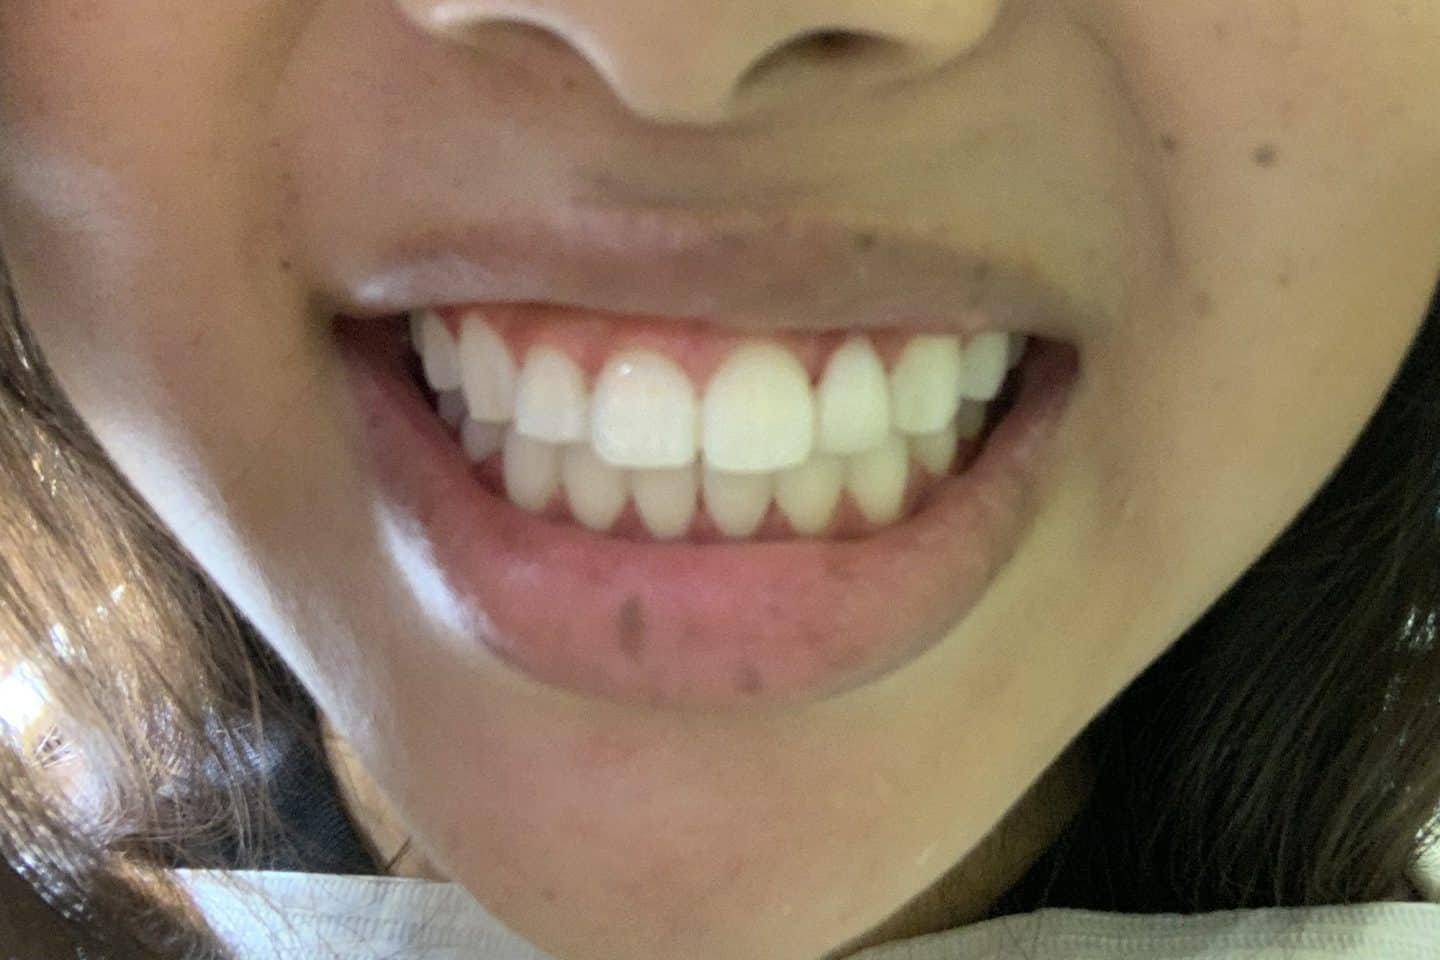 A review of the Philips Zoom teeth whitening procedure, including everything you need to know before and after getting it done!